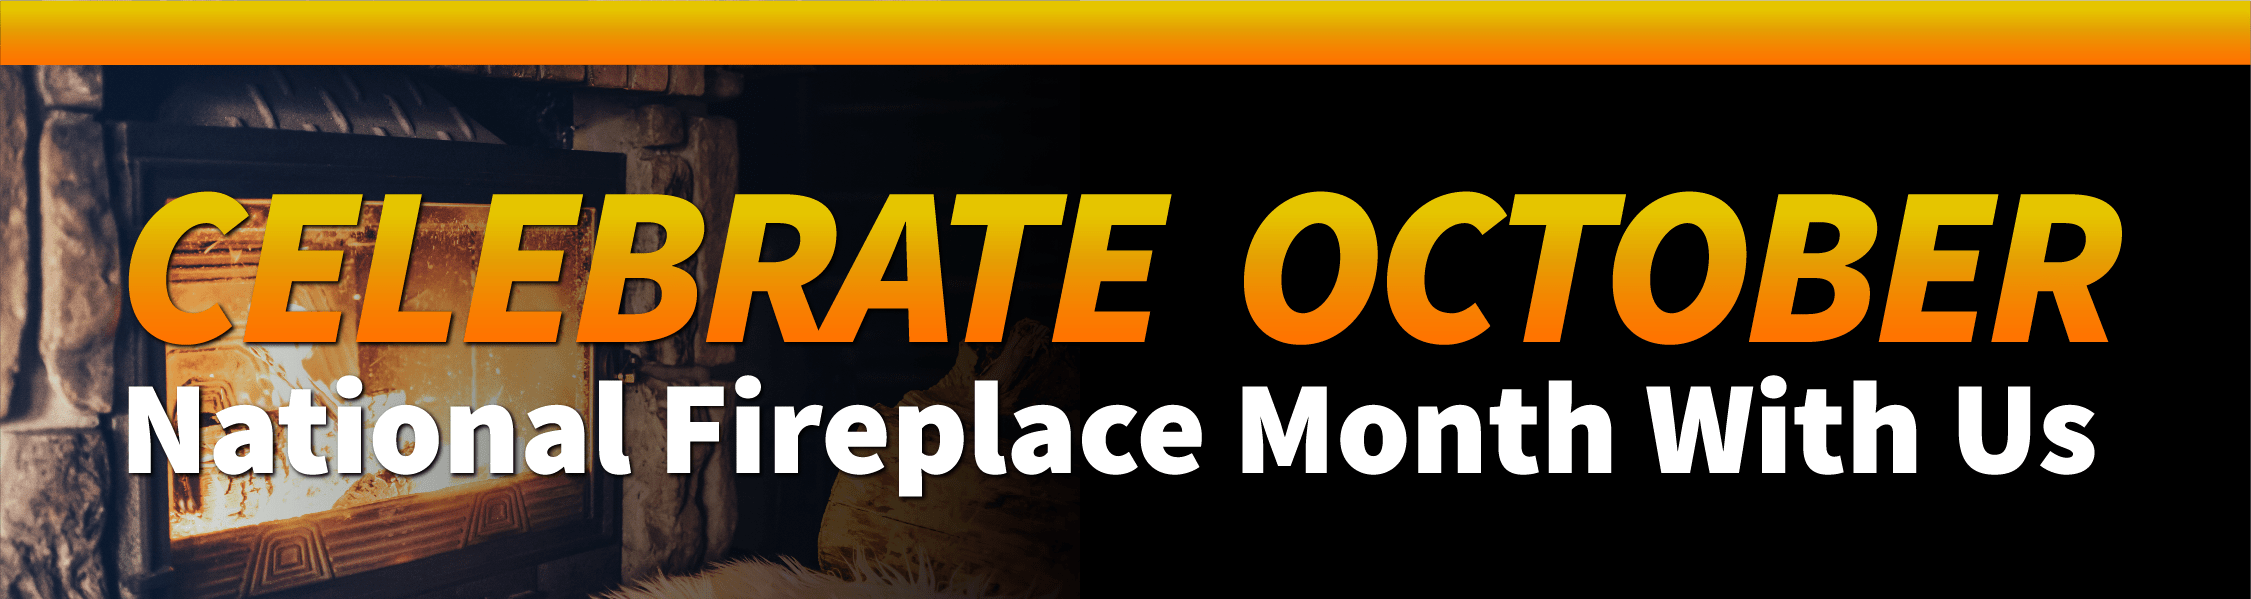 October fireplace month